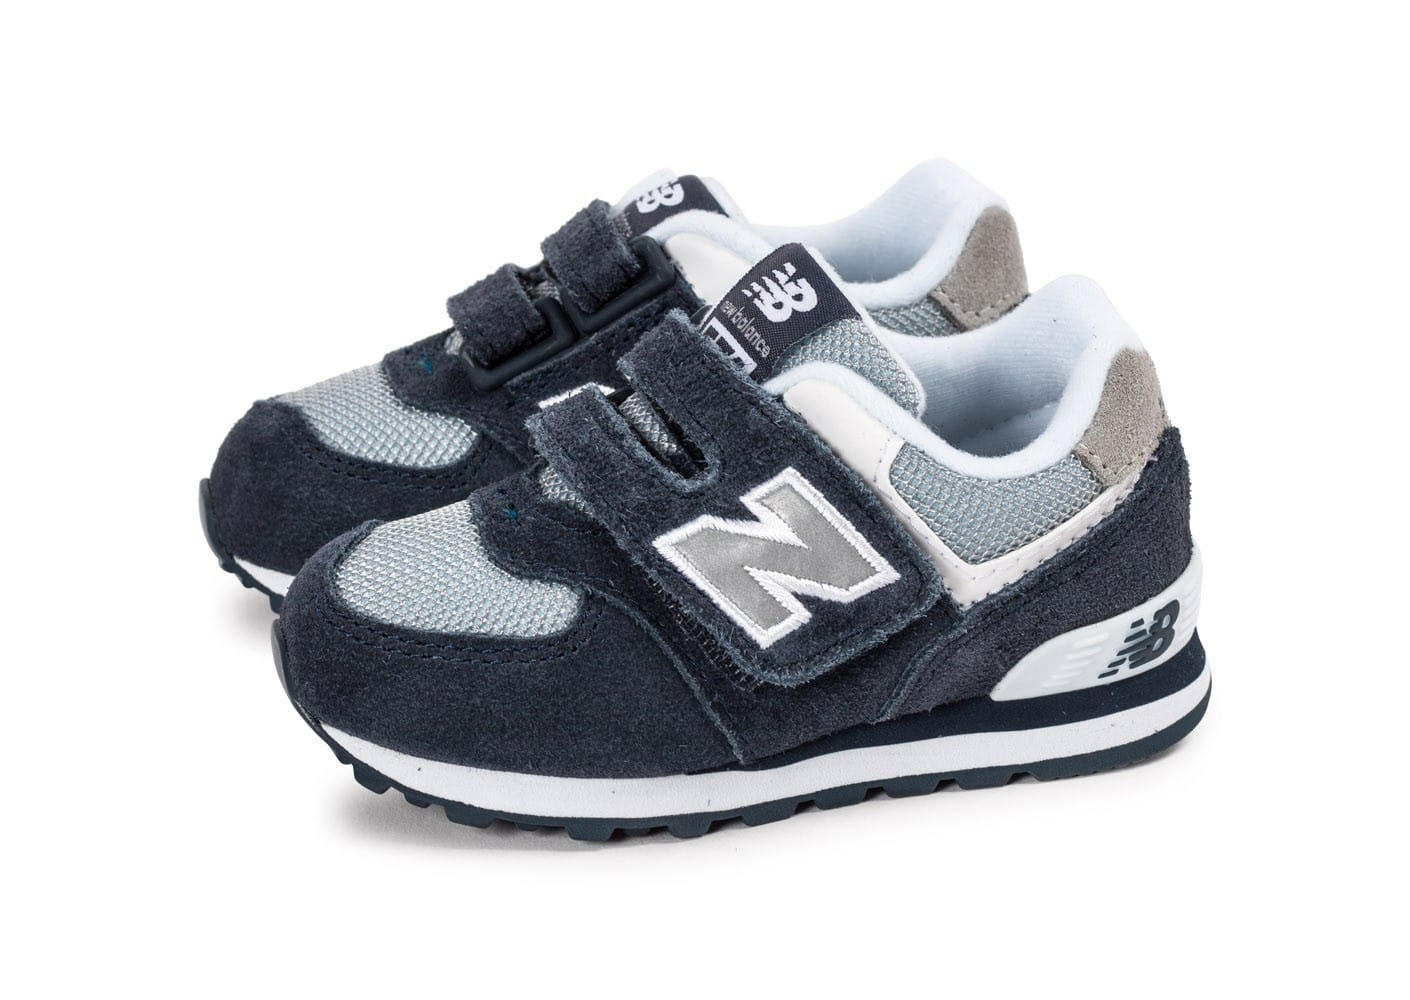 473c966fadf6c Vente en gros basket bebe new balance Pas cher - commulangues.be